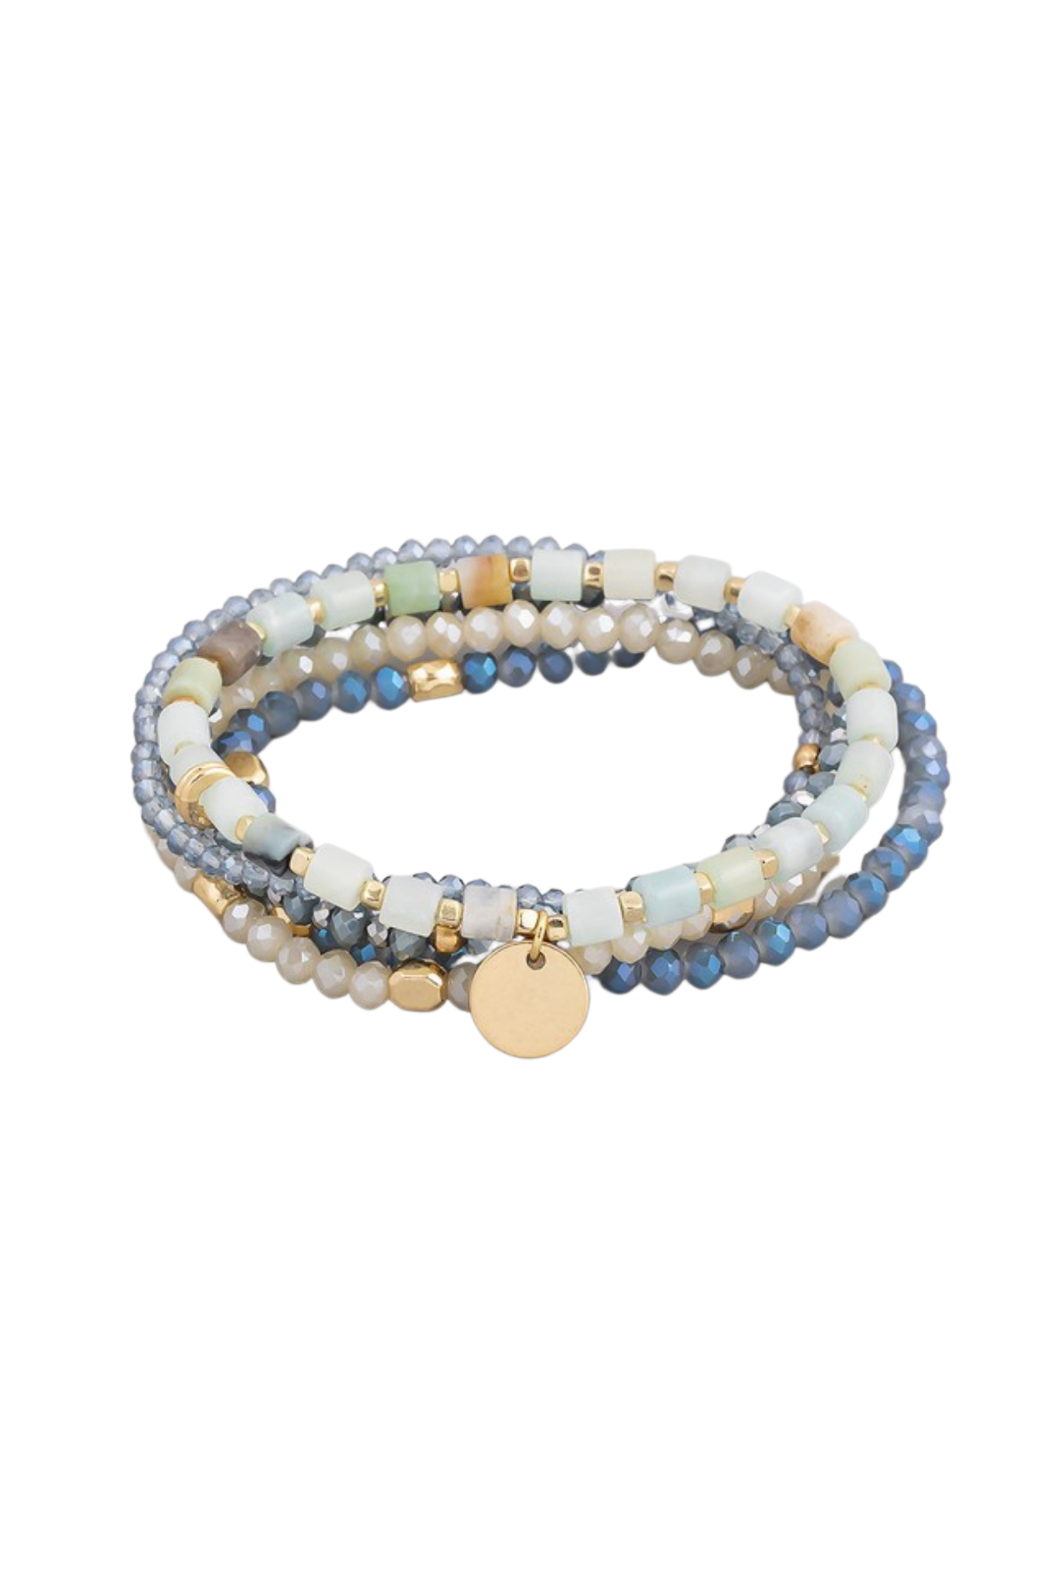 Fame Accessories Stone Beaded Coin Stretch Bracelet Set - Main Image